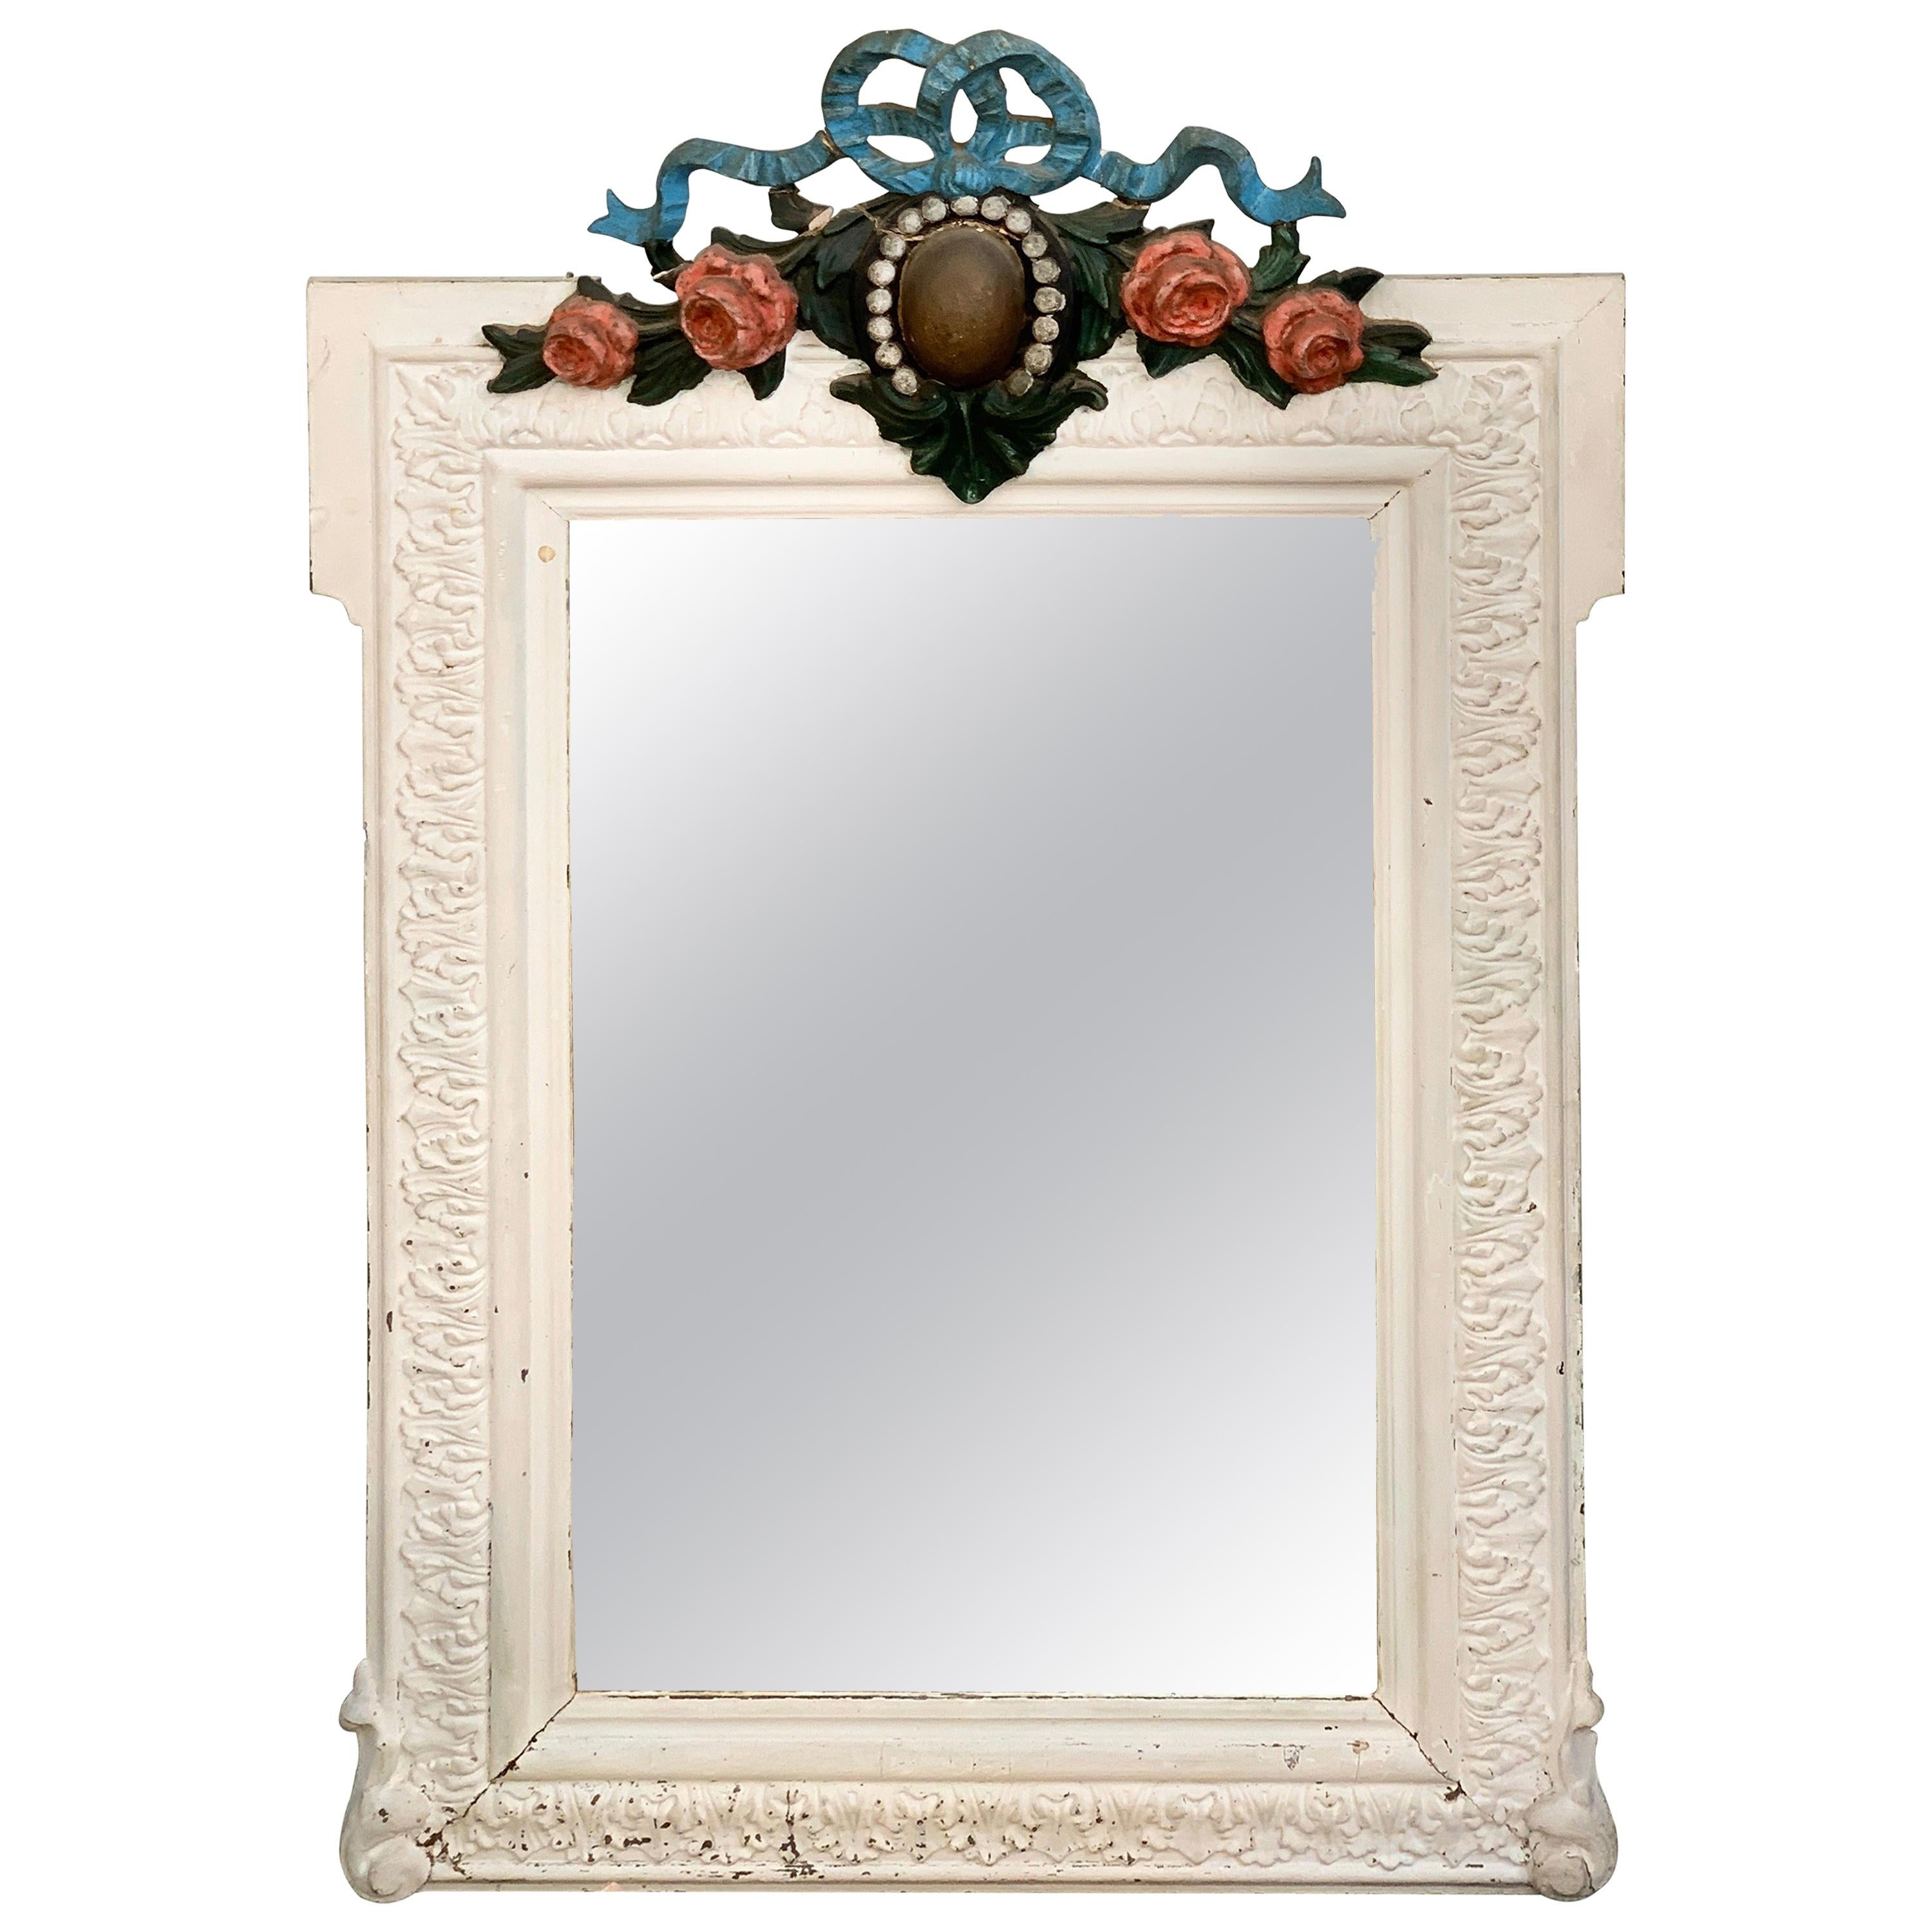 White Painted Carved Wood French Authentic Mirror with Decorations